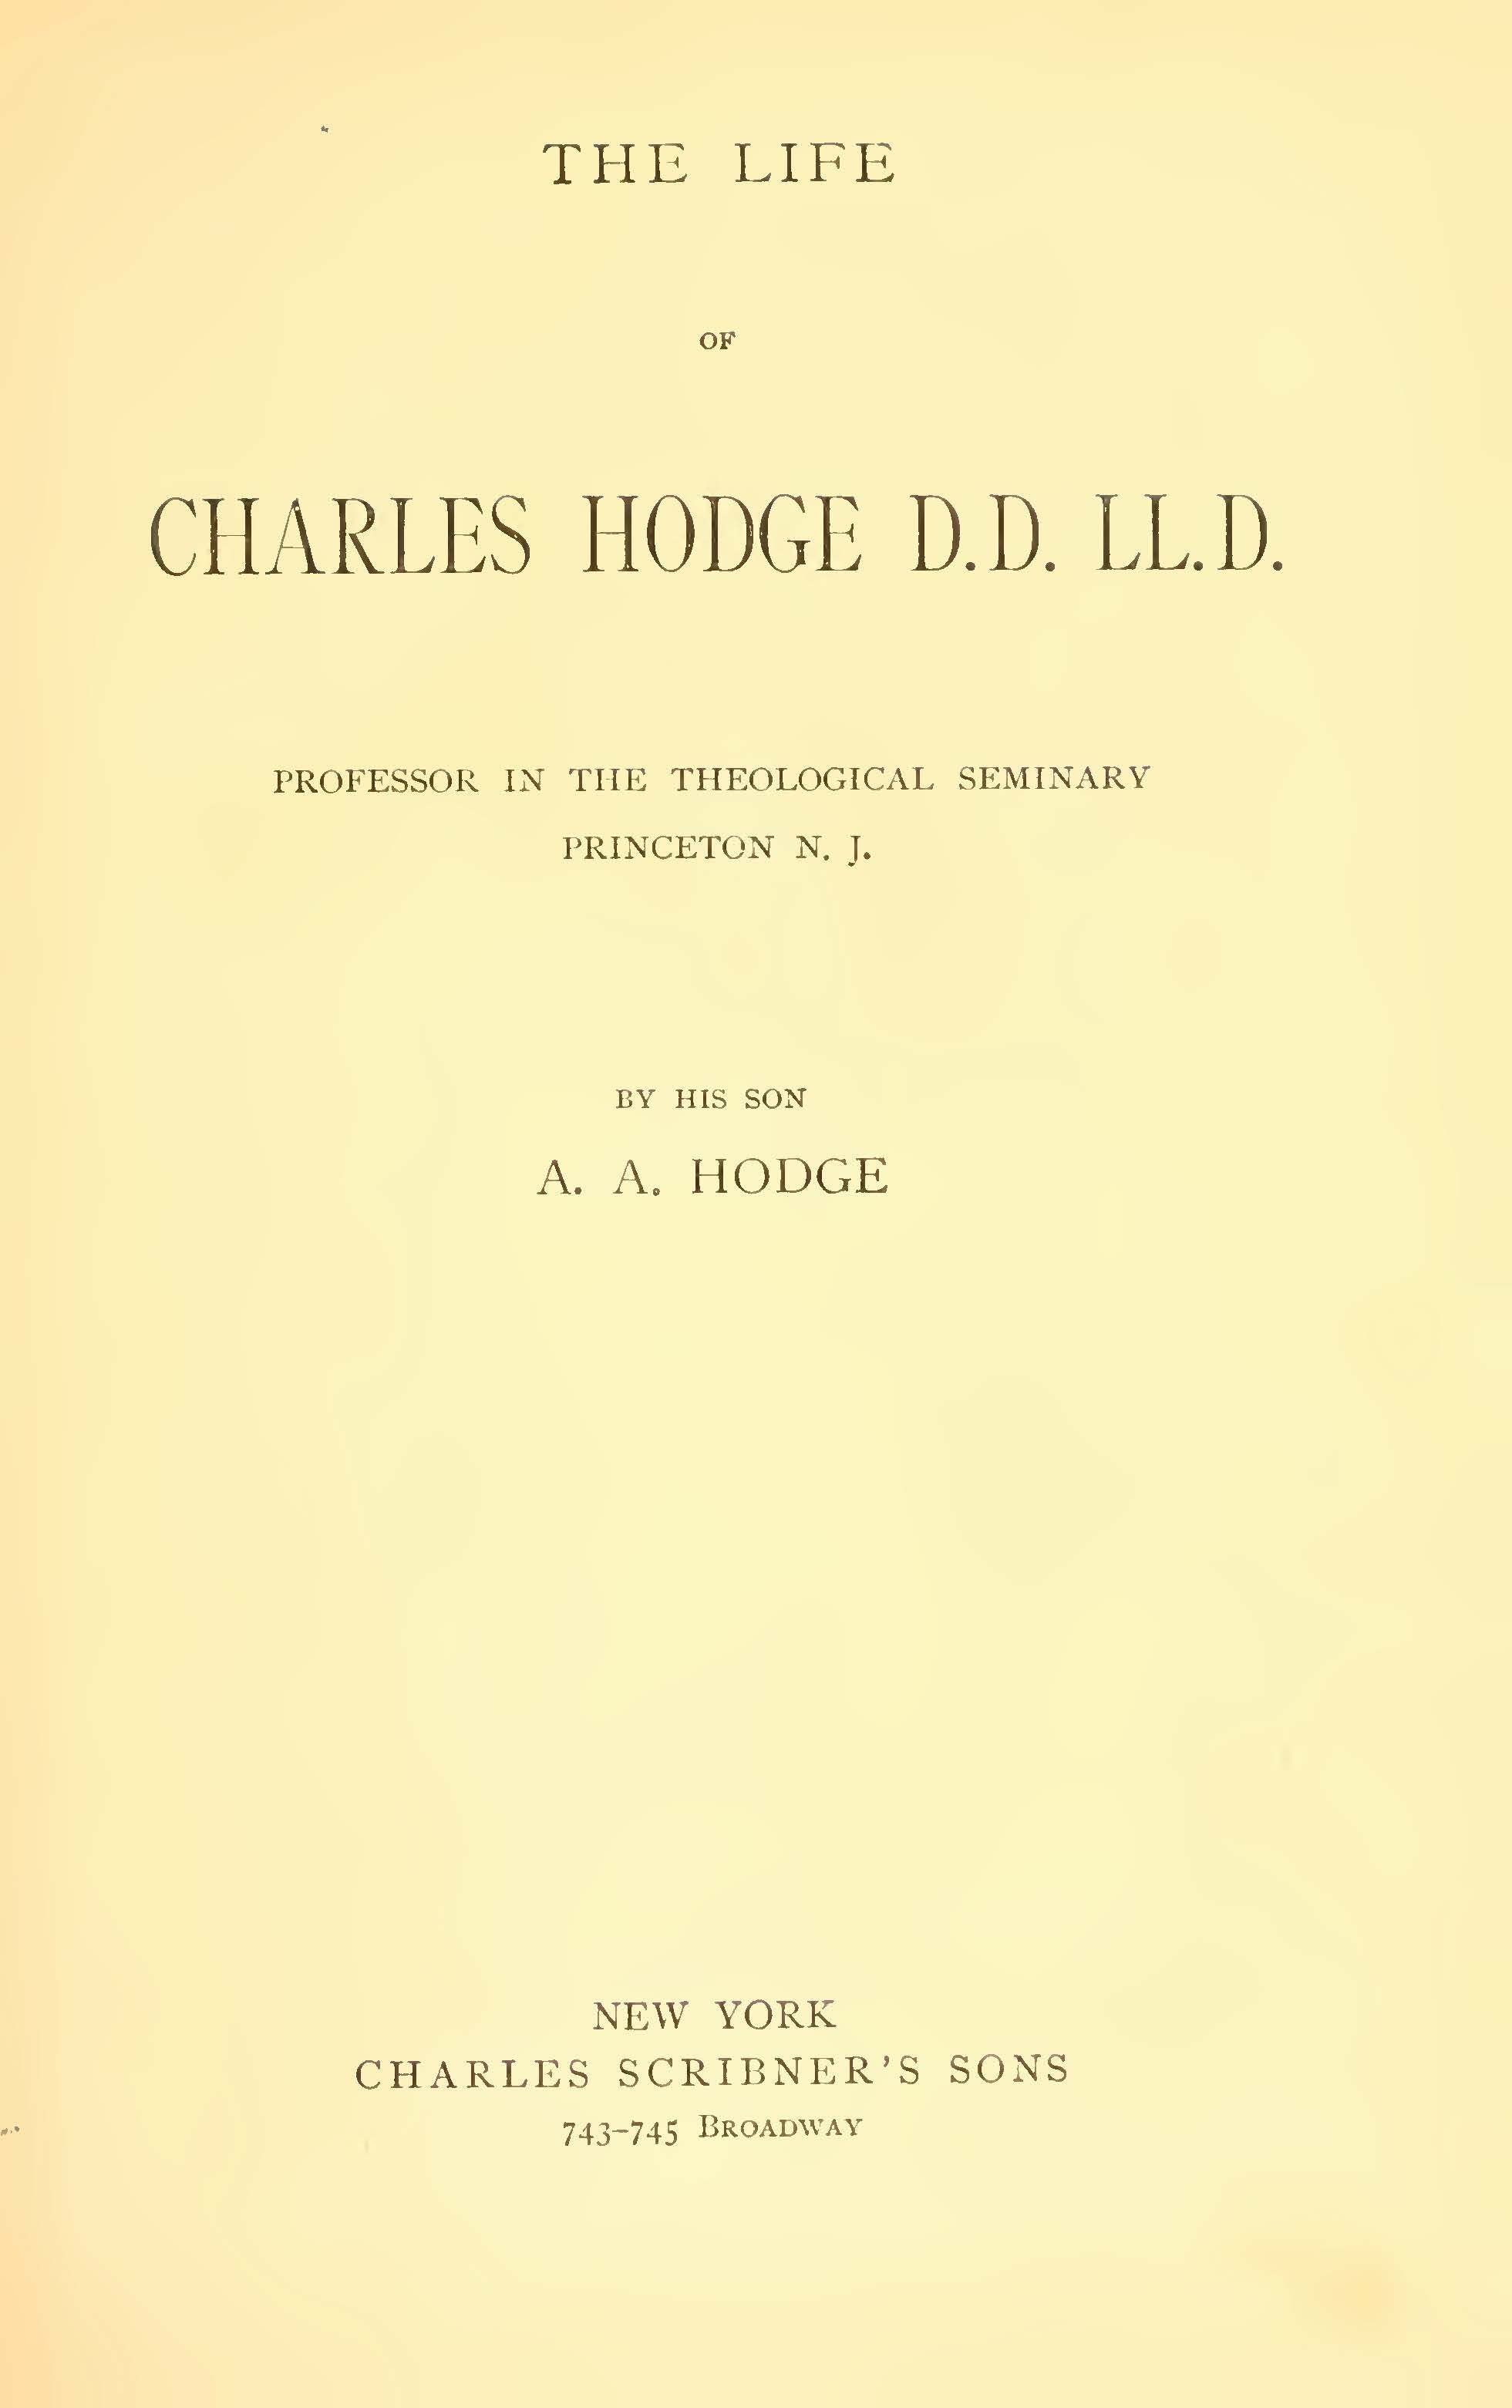 Hodge, A.A., The Life of Charles Hodge Title Page.jpg